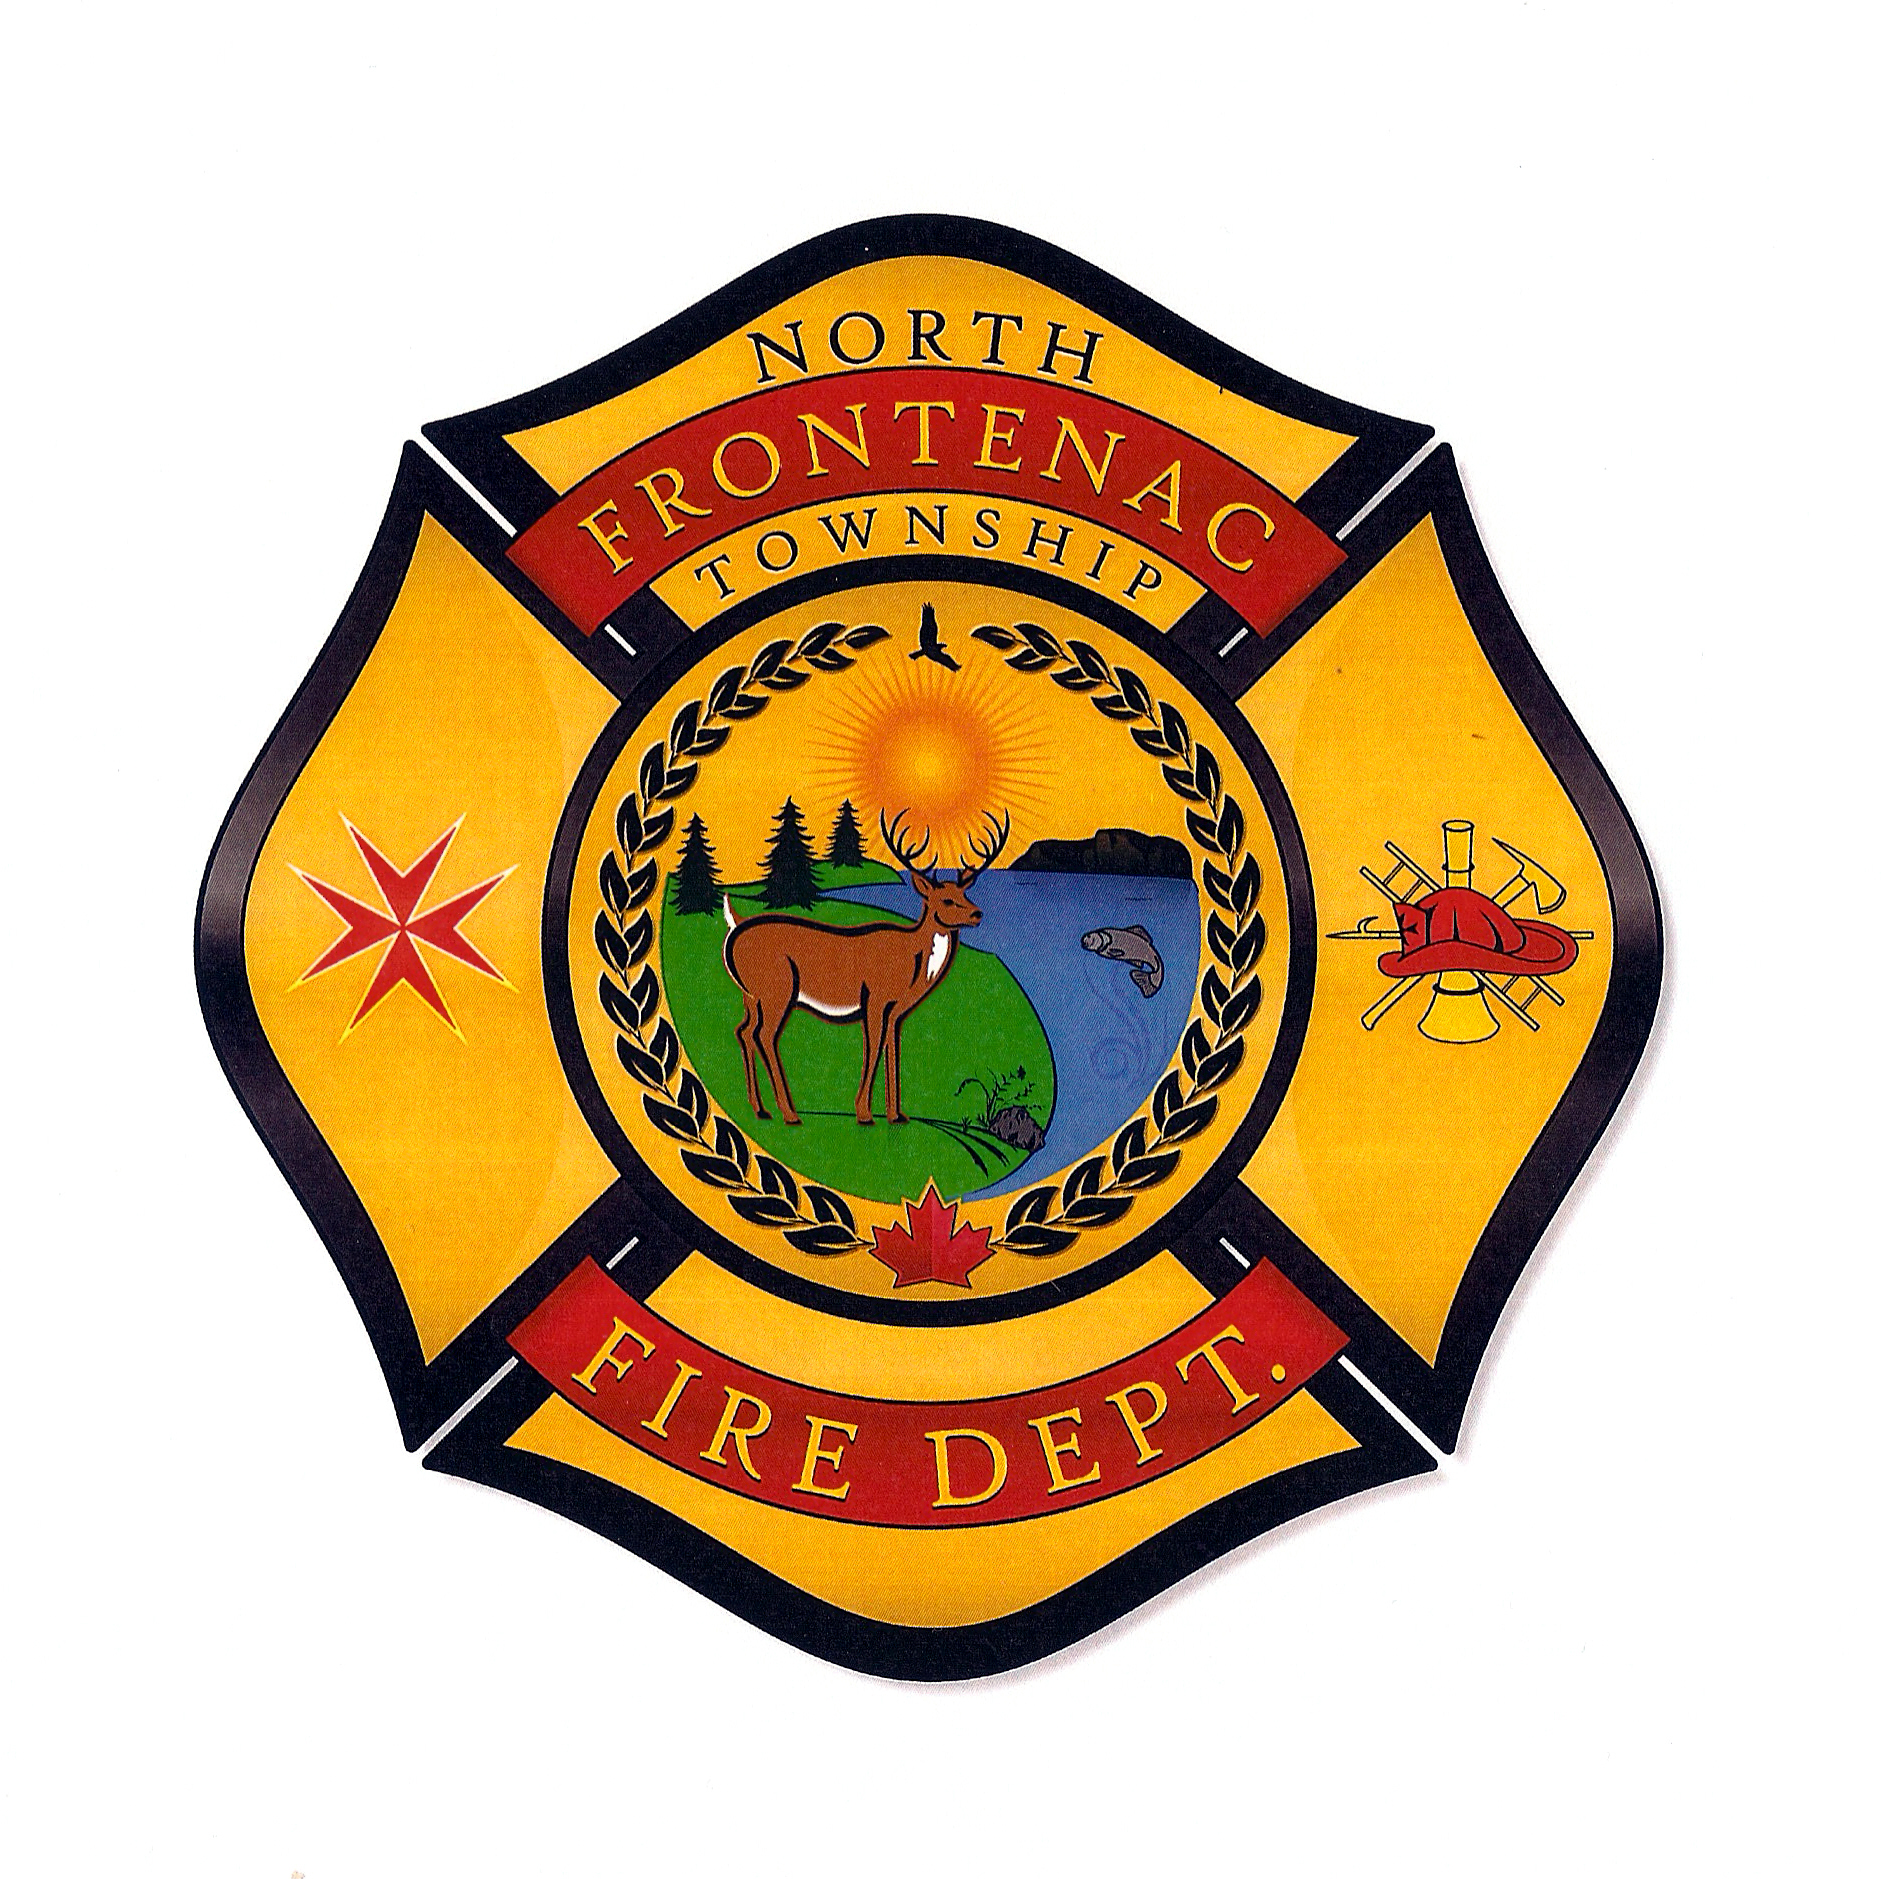 North Frontenac Fire Department's Logo